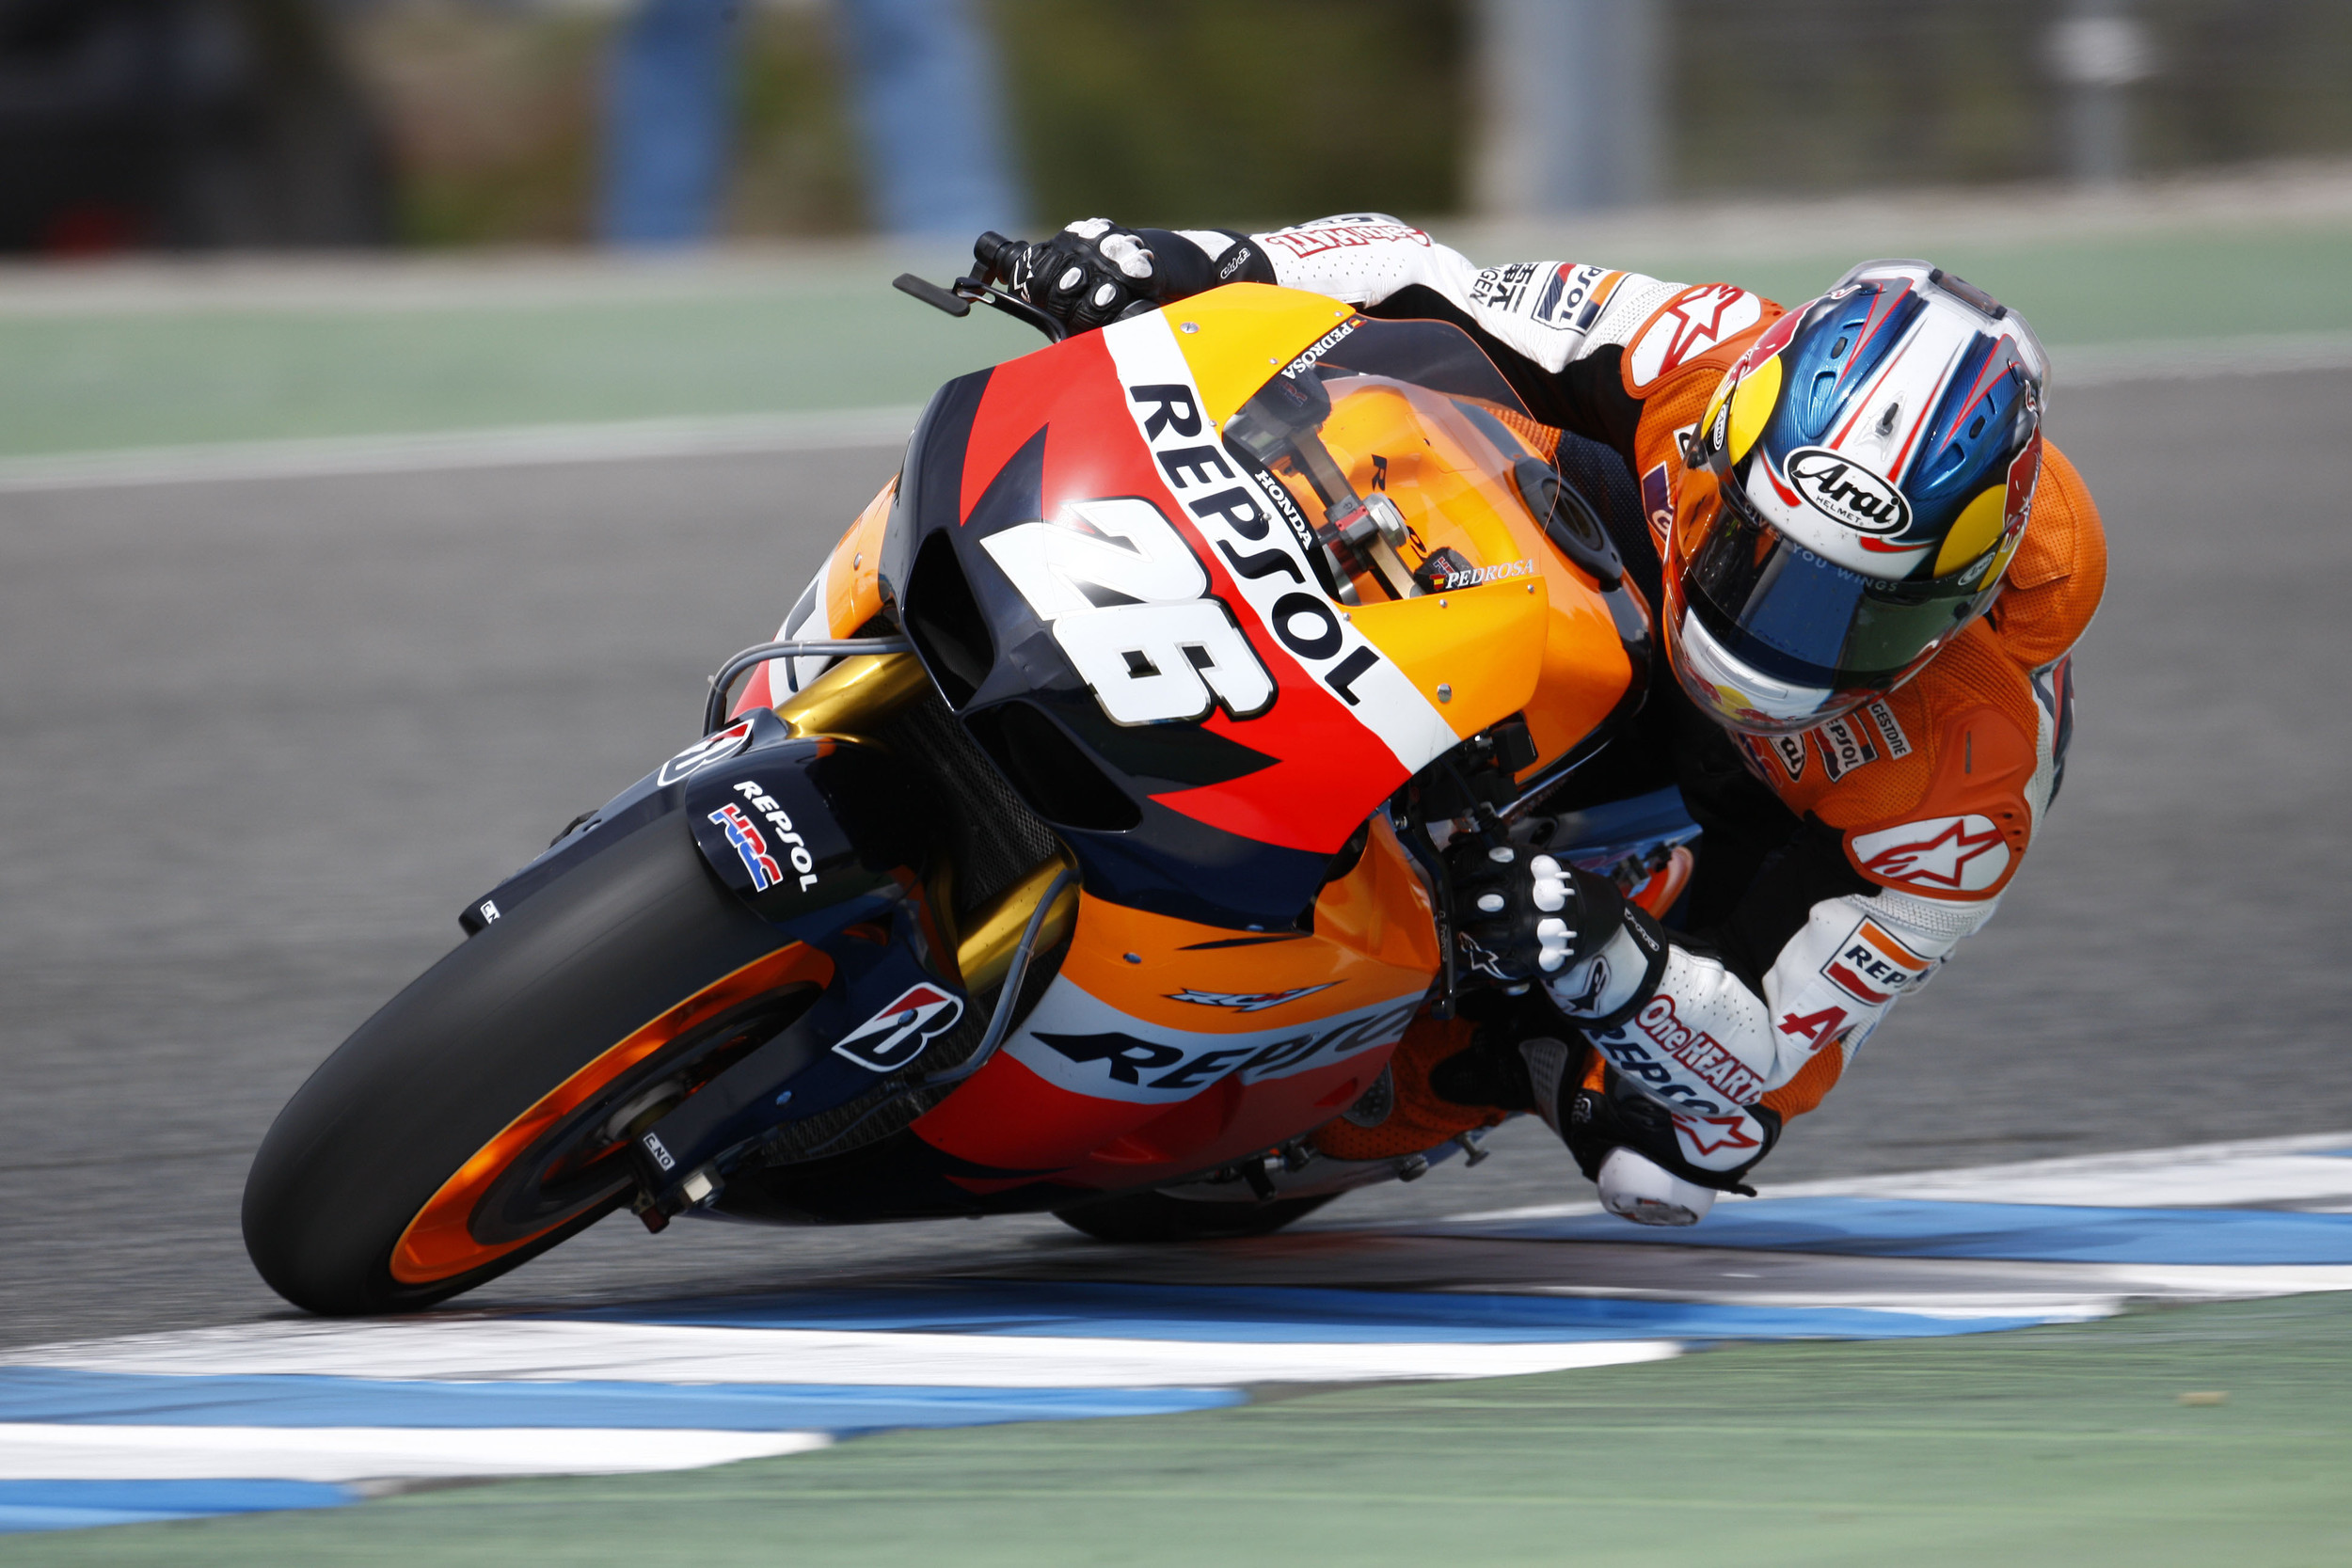 dani-pedrosa-wallpaper-background-motogp-wallpaper-hd-pc-sport-picture-pedrosa-hd-wallpaper